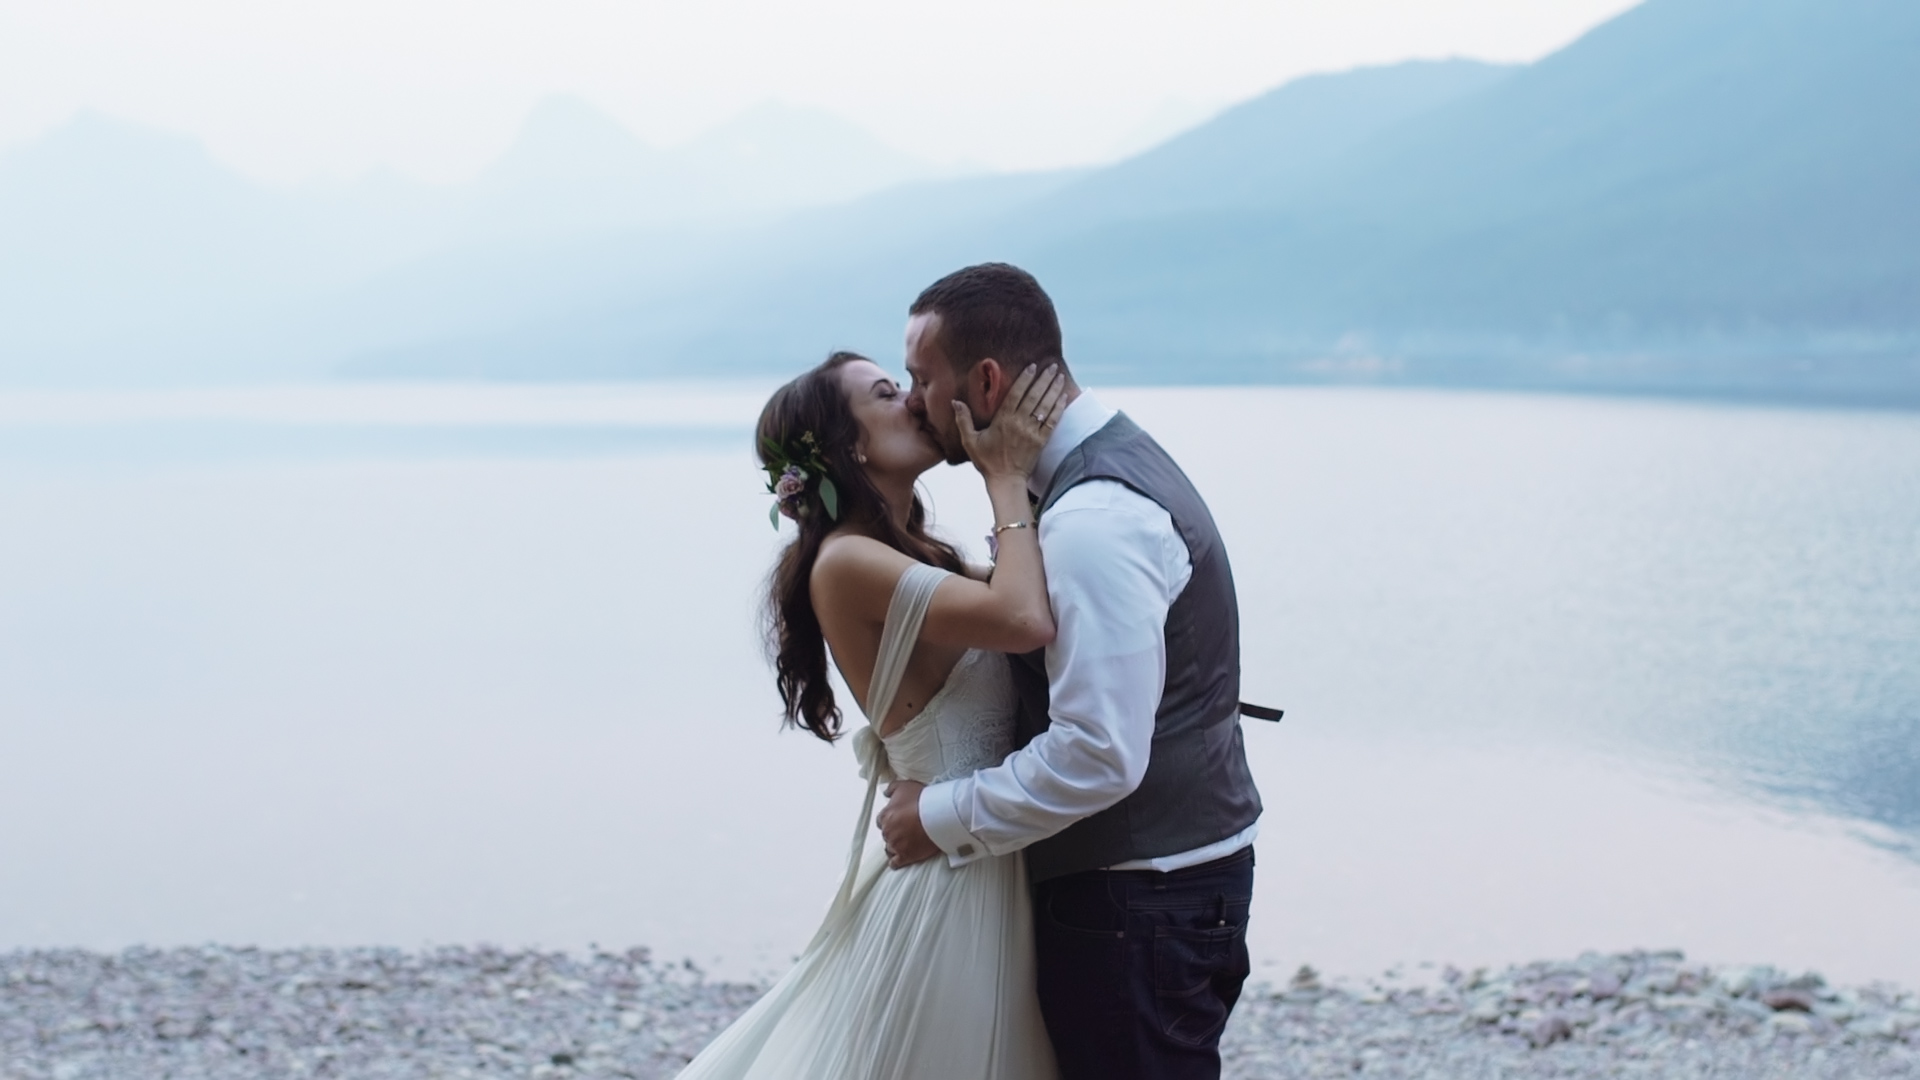 The Best Wedding Videos of 2019 That Will Make You Cry